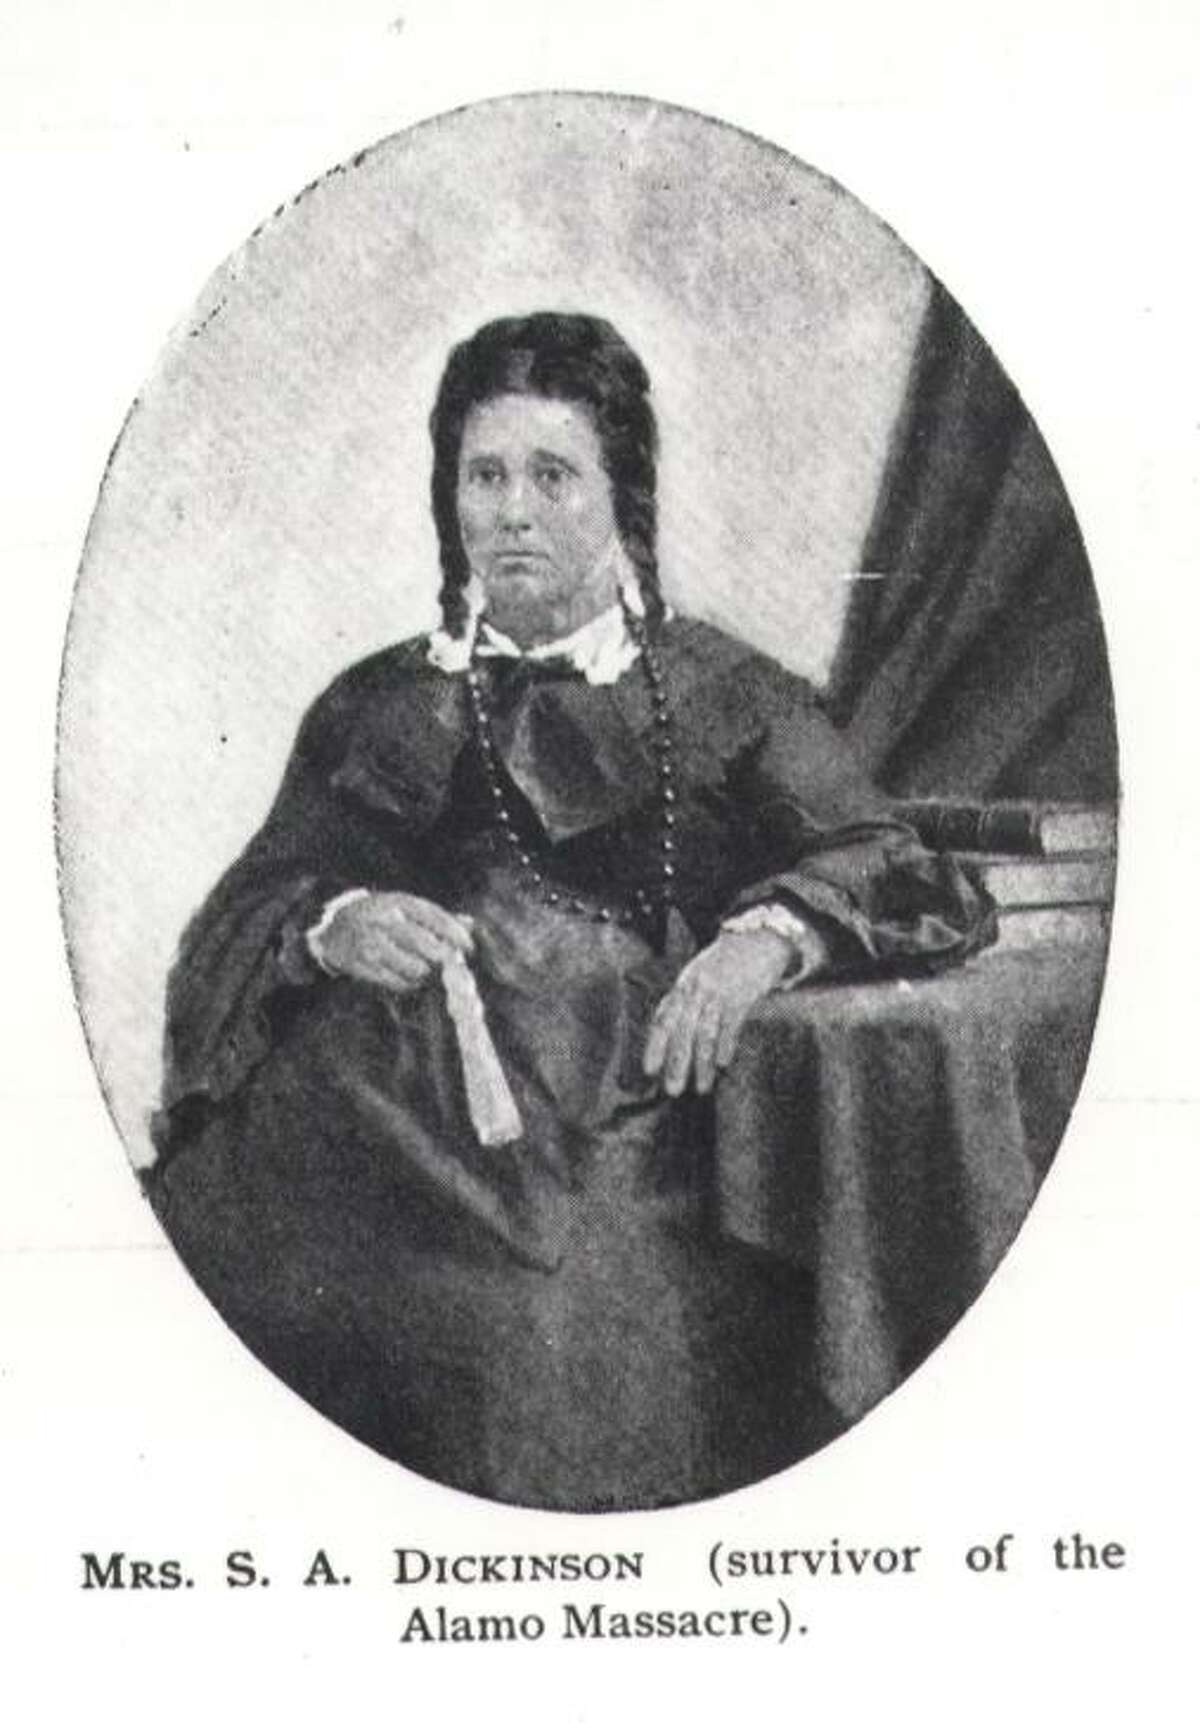 Susanna Dickinson Susanna Dickinson was an illiterate woman in her early 20s. Dickinson and her daughter were survivors of the Battle of the Alamo. This page is from